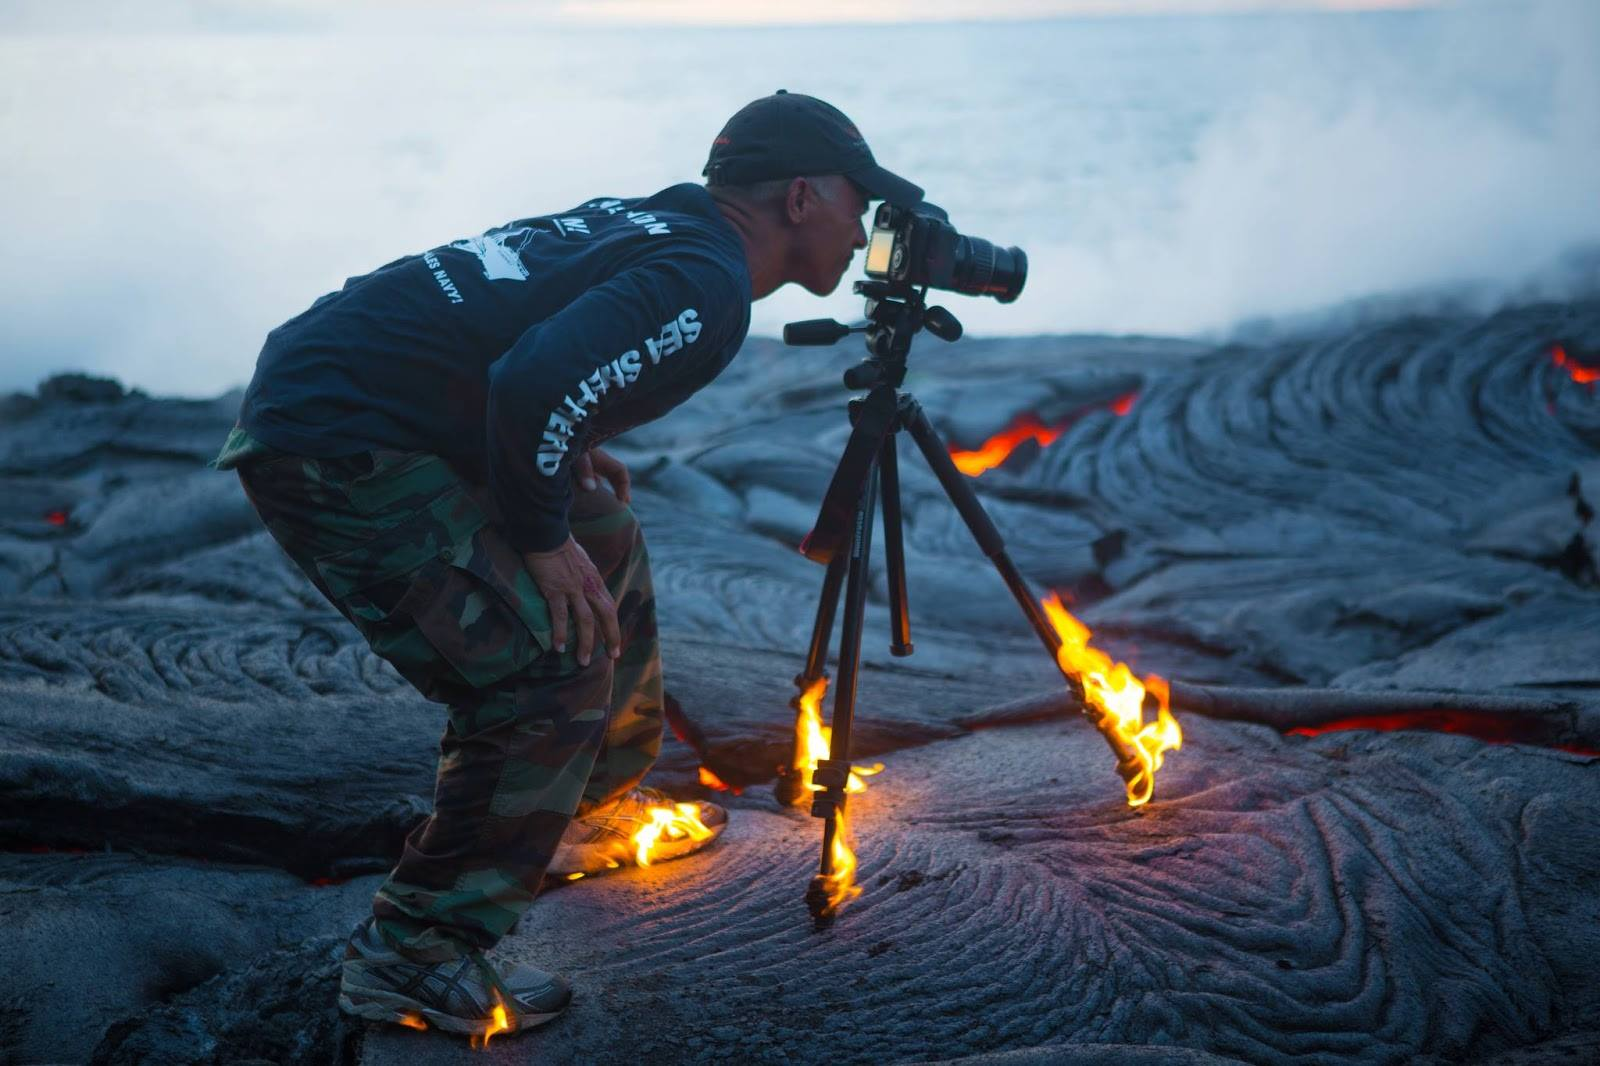 Christopher Hirata is Committed to Getting the Shot